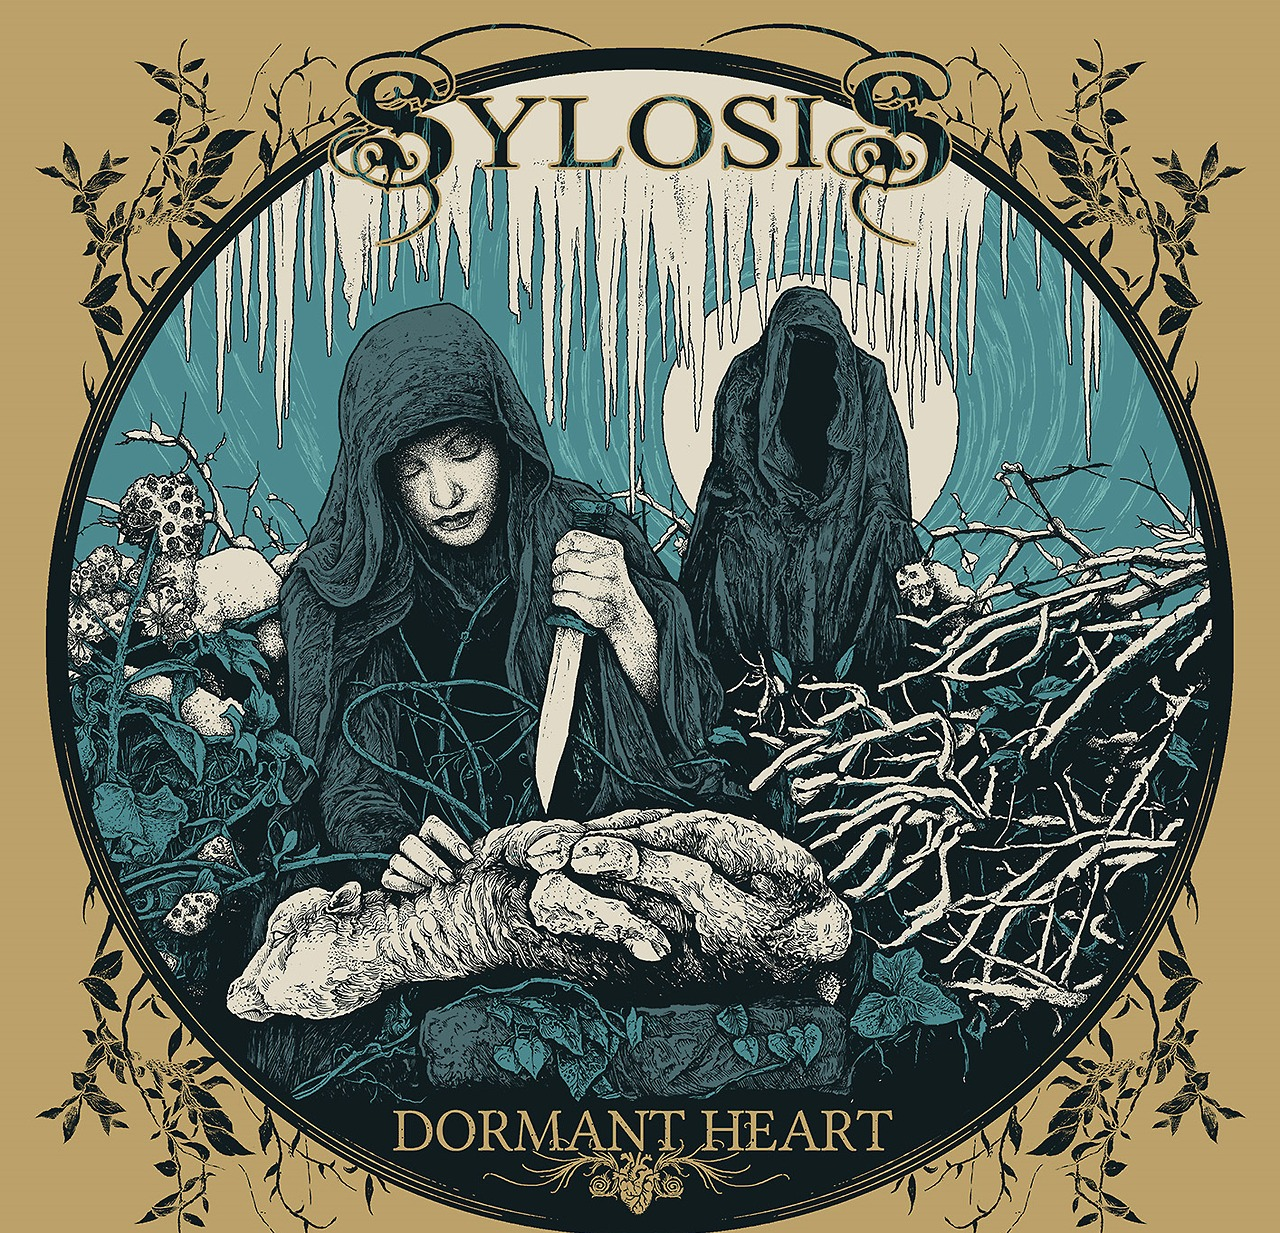 SYLOSIS – Dormant Heart